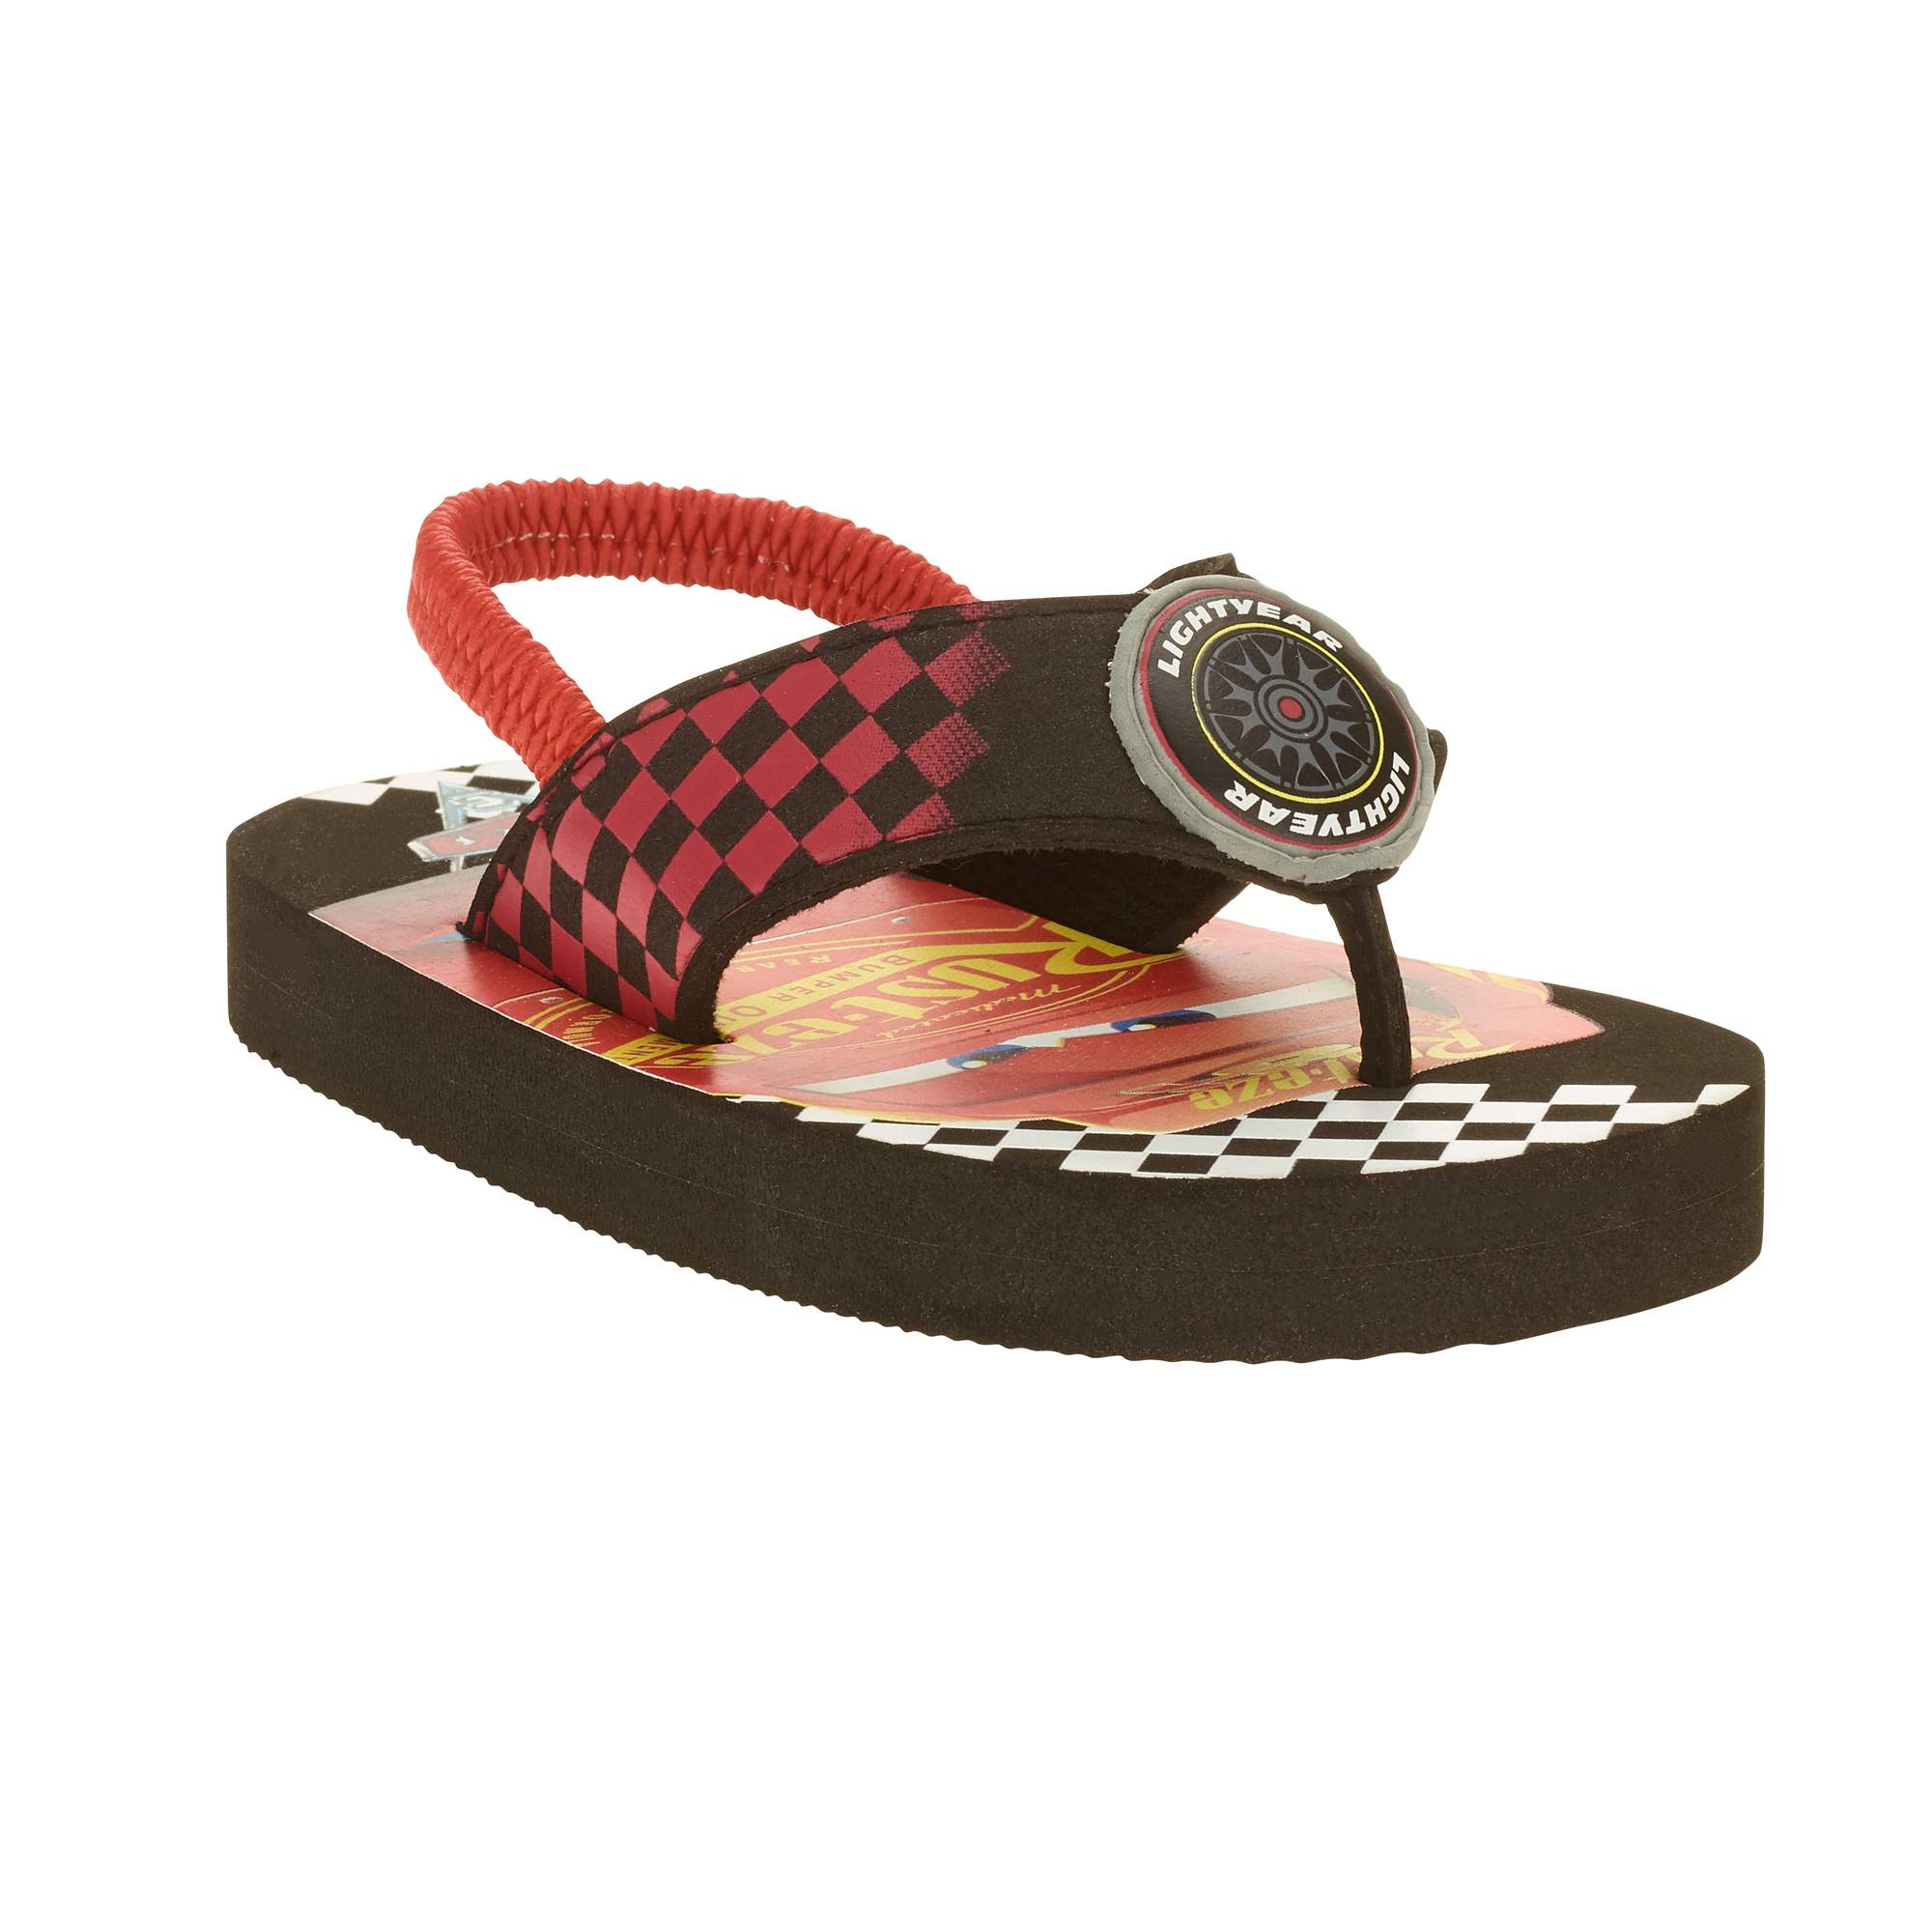 Image of Cars Toddler Boys' Beach Flip Flops